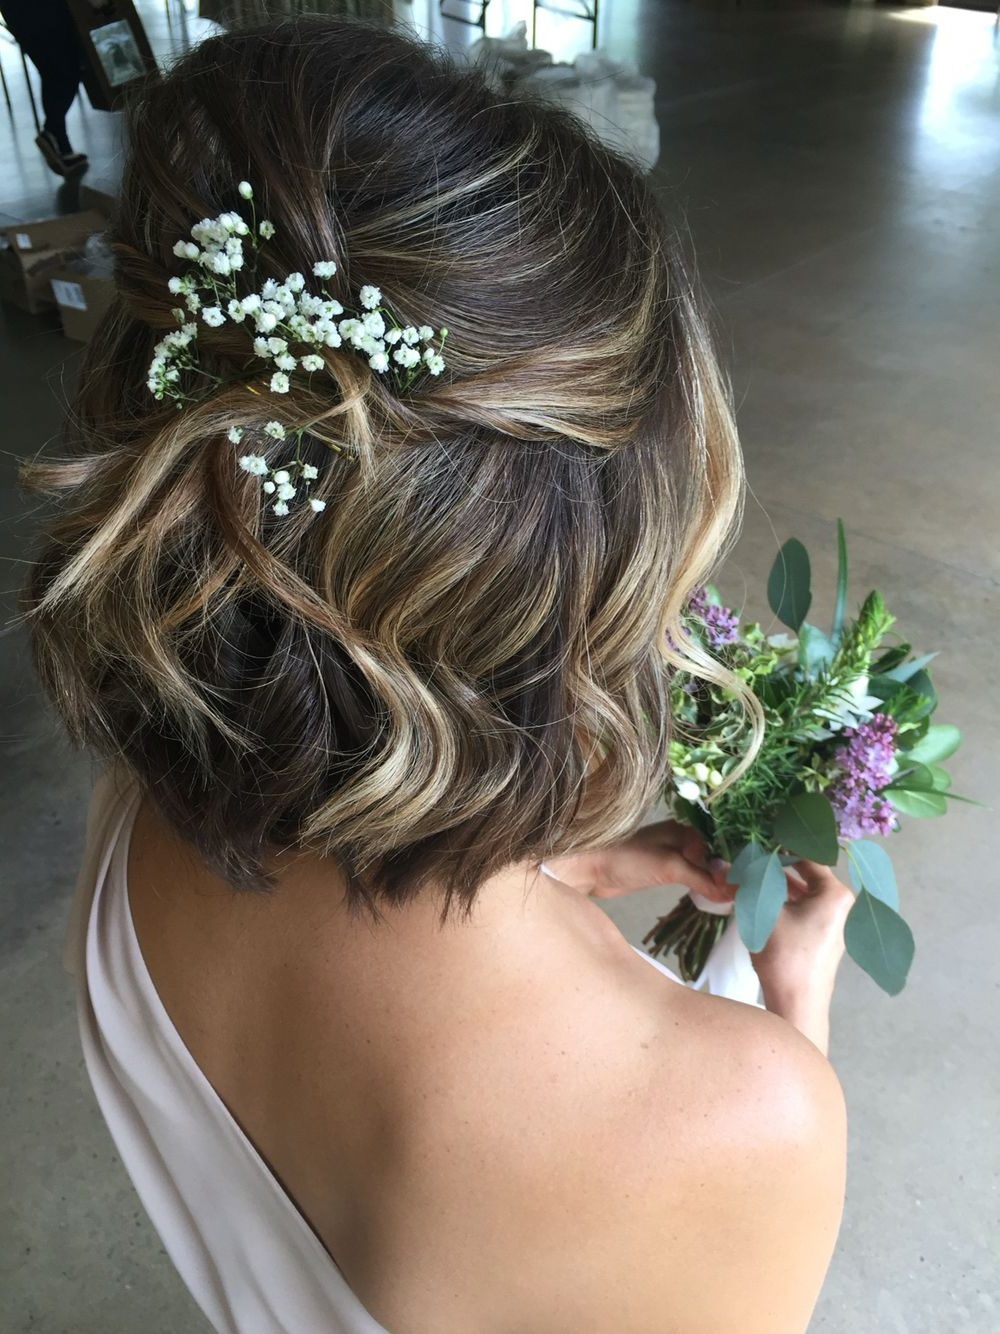 Bridesmaid Hairstyles for Short Hair  Best Hairstyles for